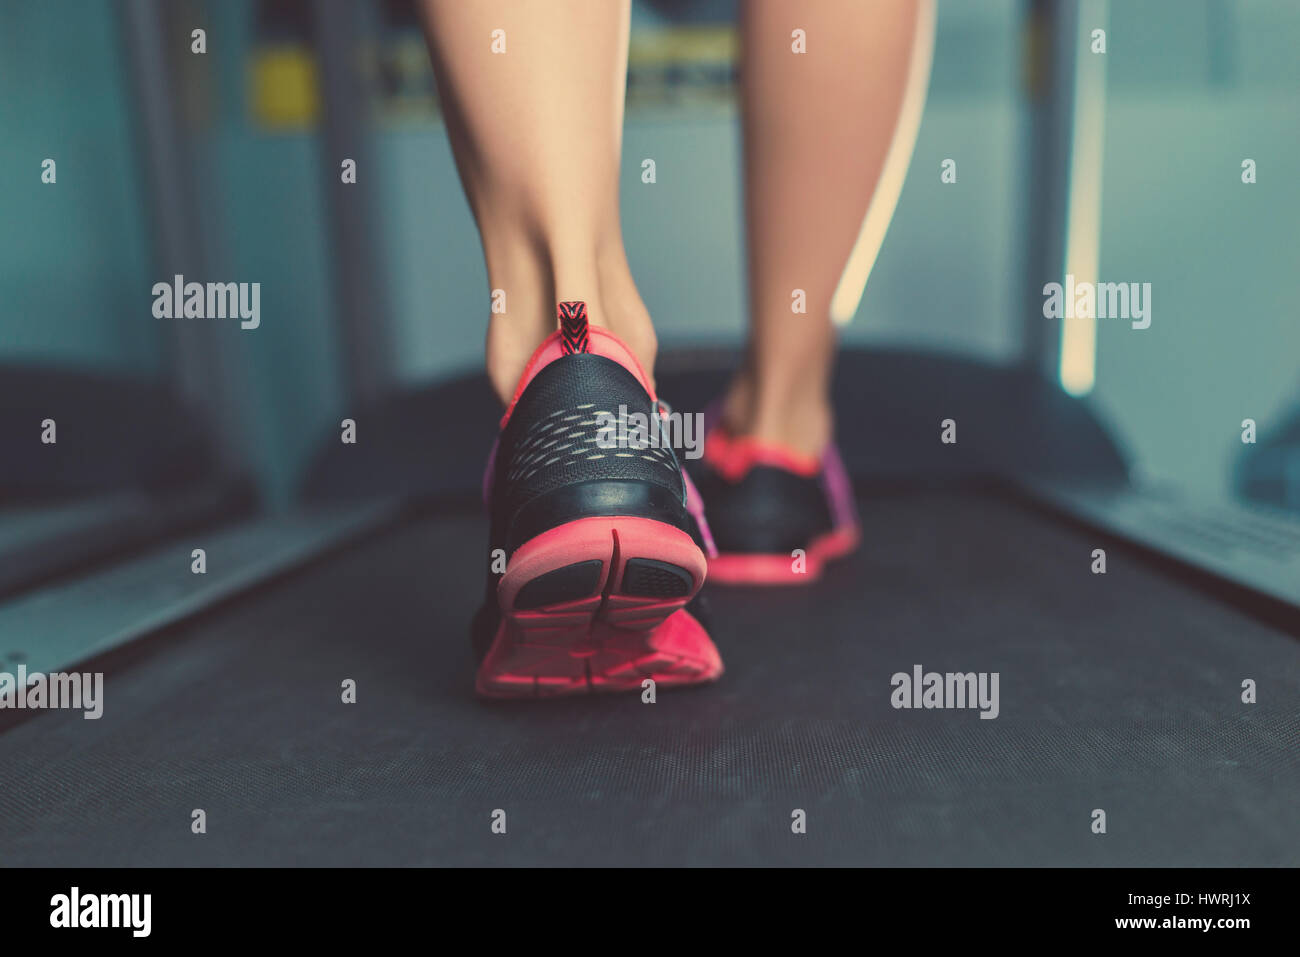 Female muscular feet in sneakers running on the treadmill at the gym. Concept for fitness, exercising and healthy - Stock Image